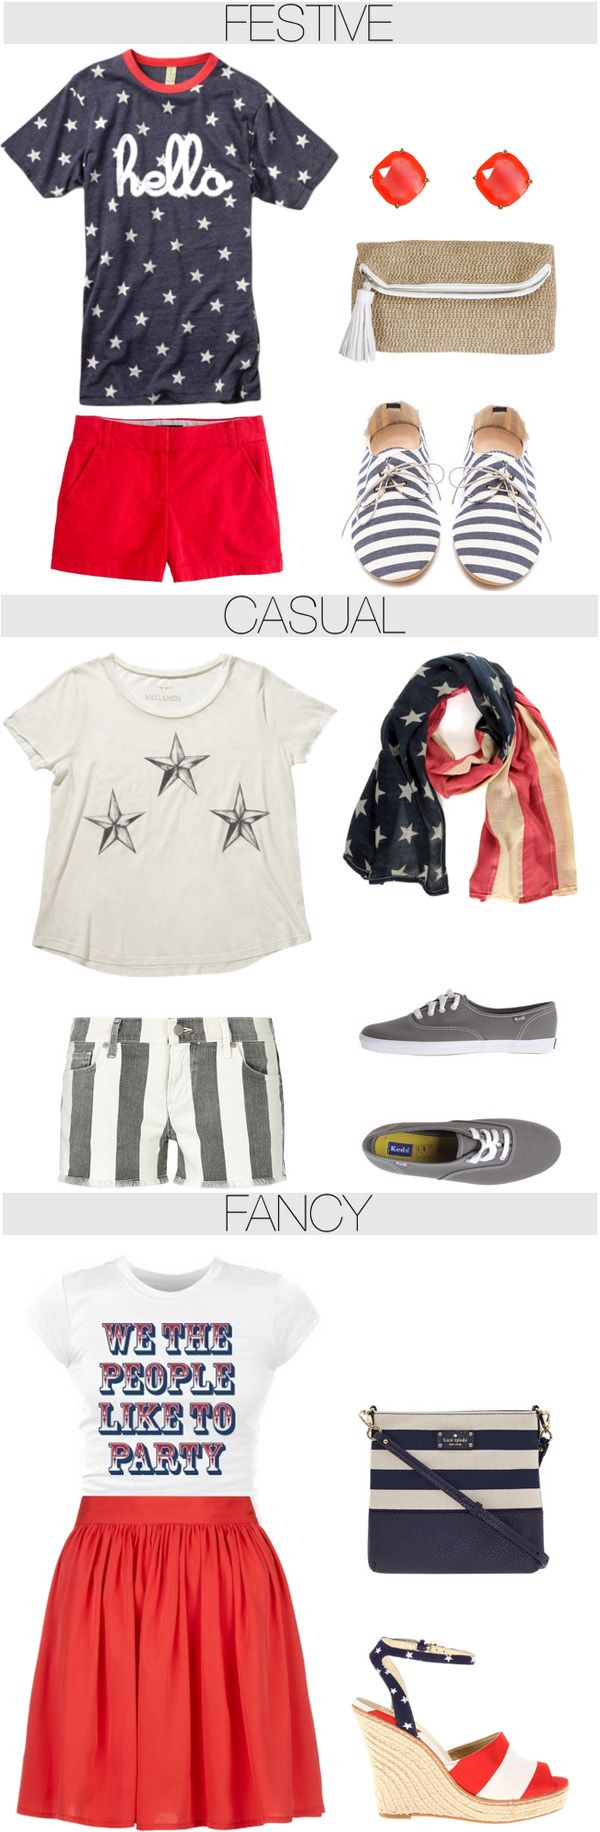 4th of July Attire! Clothes Casual Outift for • teens • movies • girls • women •. summer • fall • spring • winter • outfit ideas • dates • parties Polyvore :) Catalina Christiano